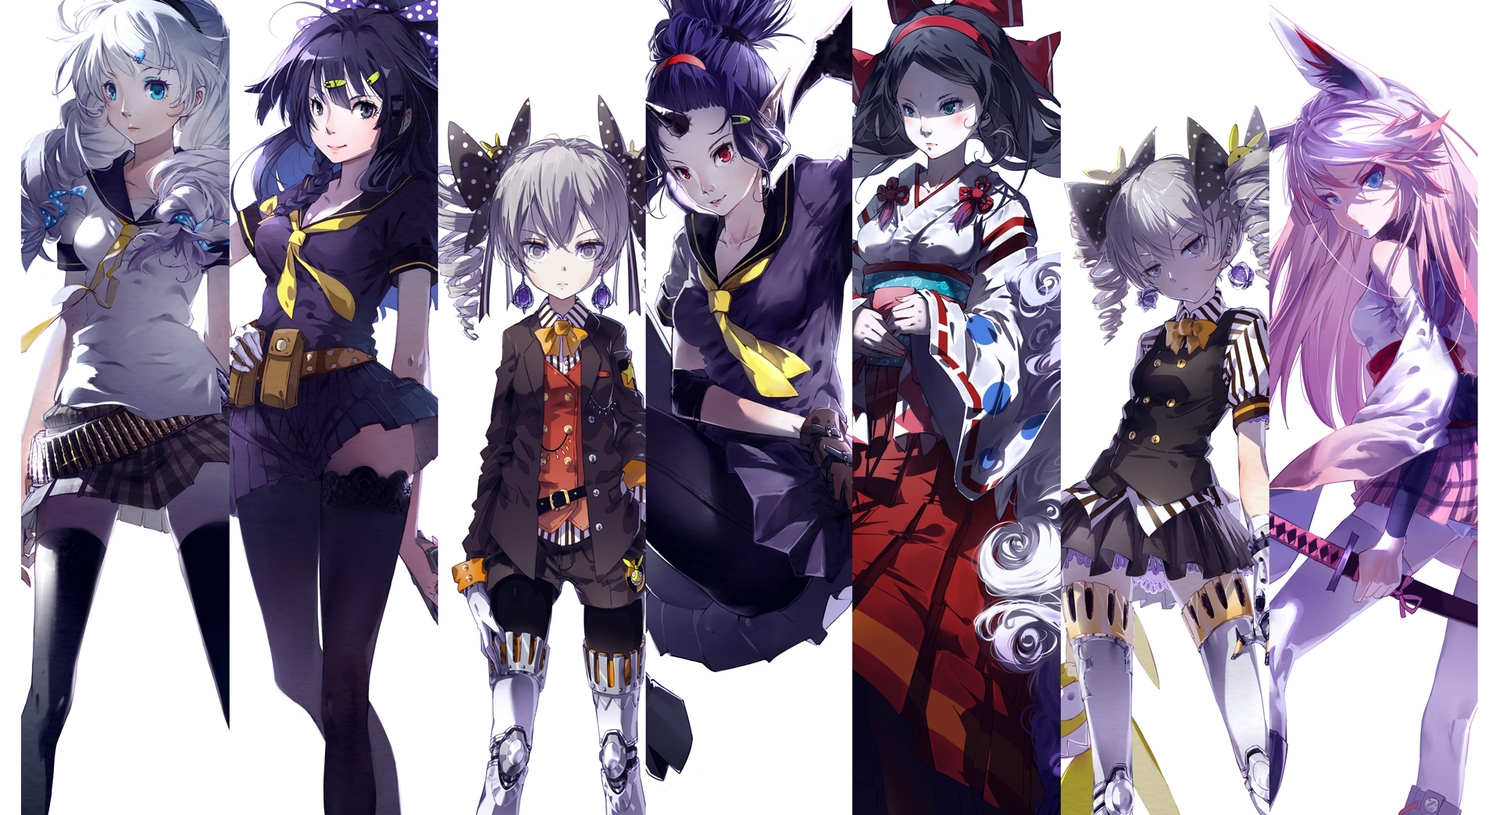 animal_ears black_hair blue_eyes blue_hair bronya_zaychik bunny_ears bunnygirl cici gloves headband honkai_impact horns katana kiana_kaslana long_hair original pink_hair pointed_ears raiden_mei red_eyes school_uniform skirt sword tagme_(character) thighhighs twintails weapon white_hair yae_sakura_(benghuai_xueyuan) zettai_ryouiki